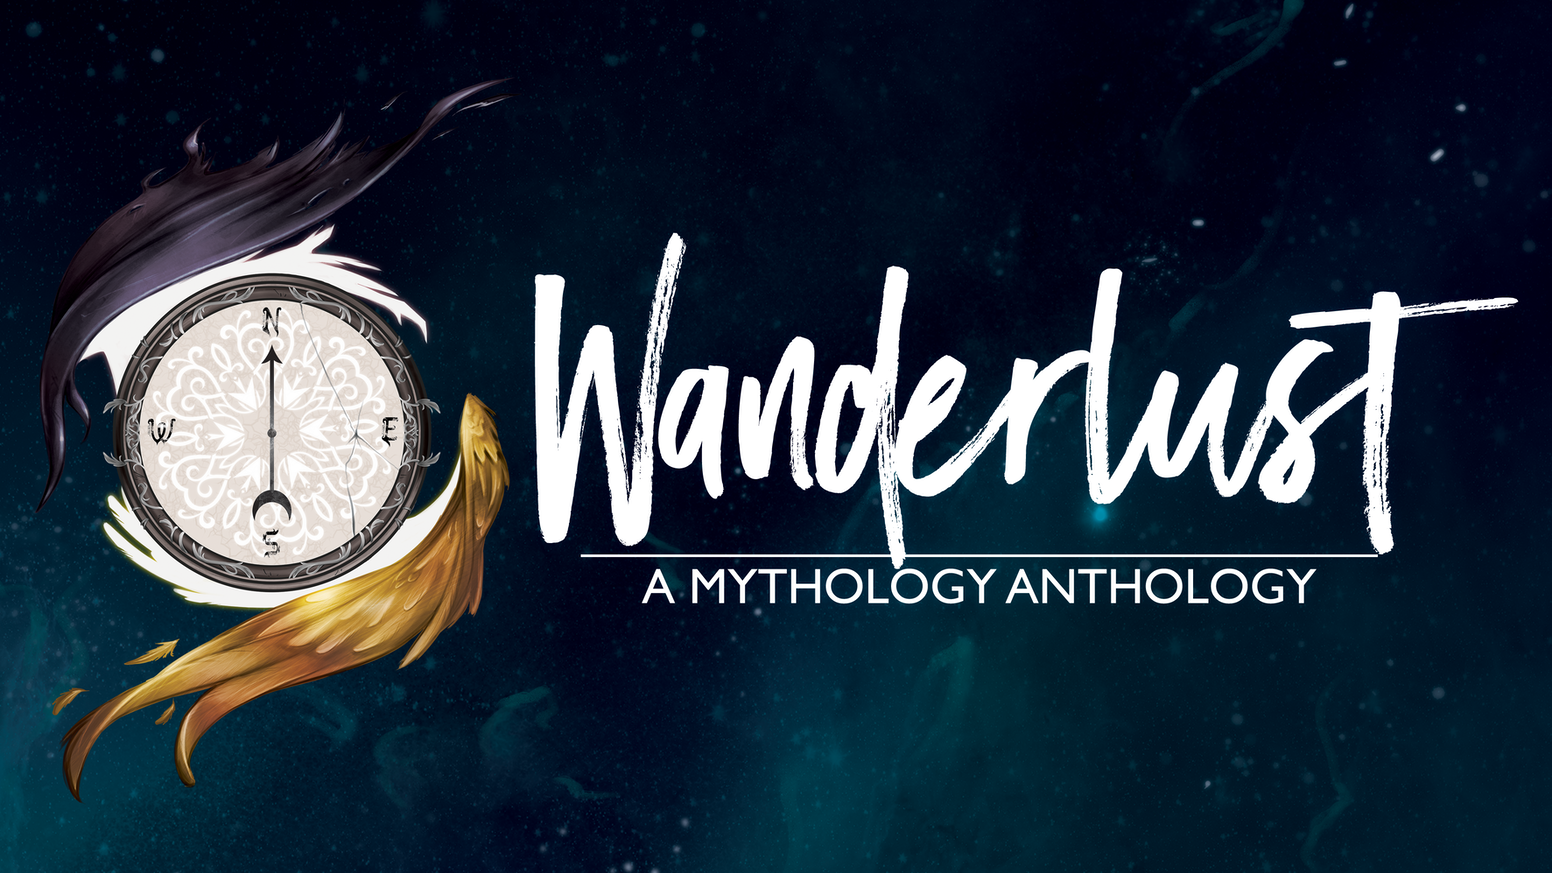 A full colour anthology filled with all-new illustrations, comics, and short stories that explore reimagined mythology.